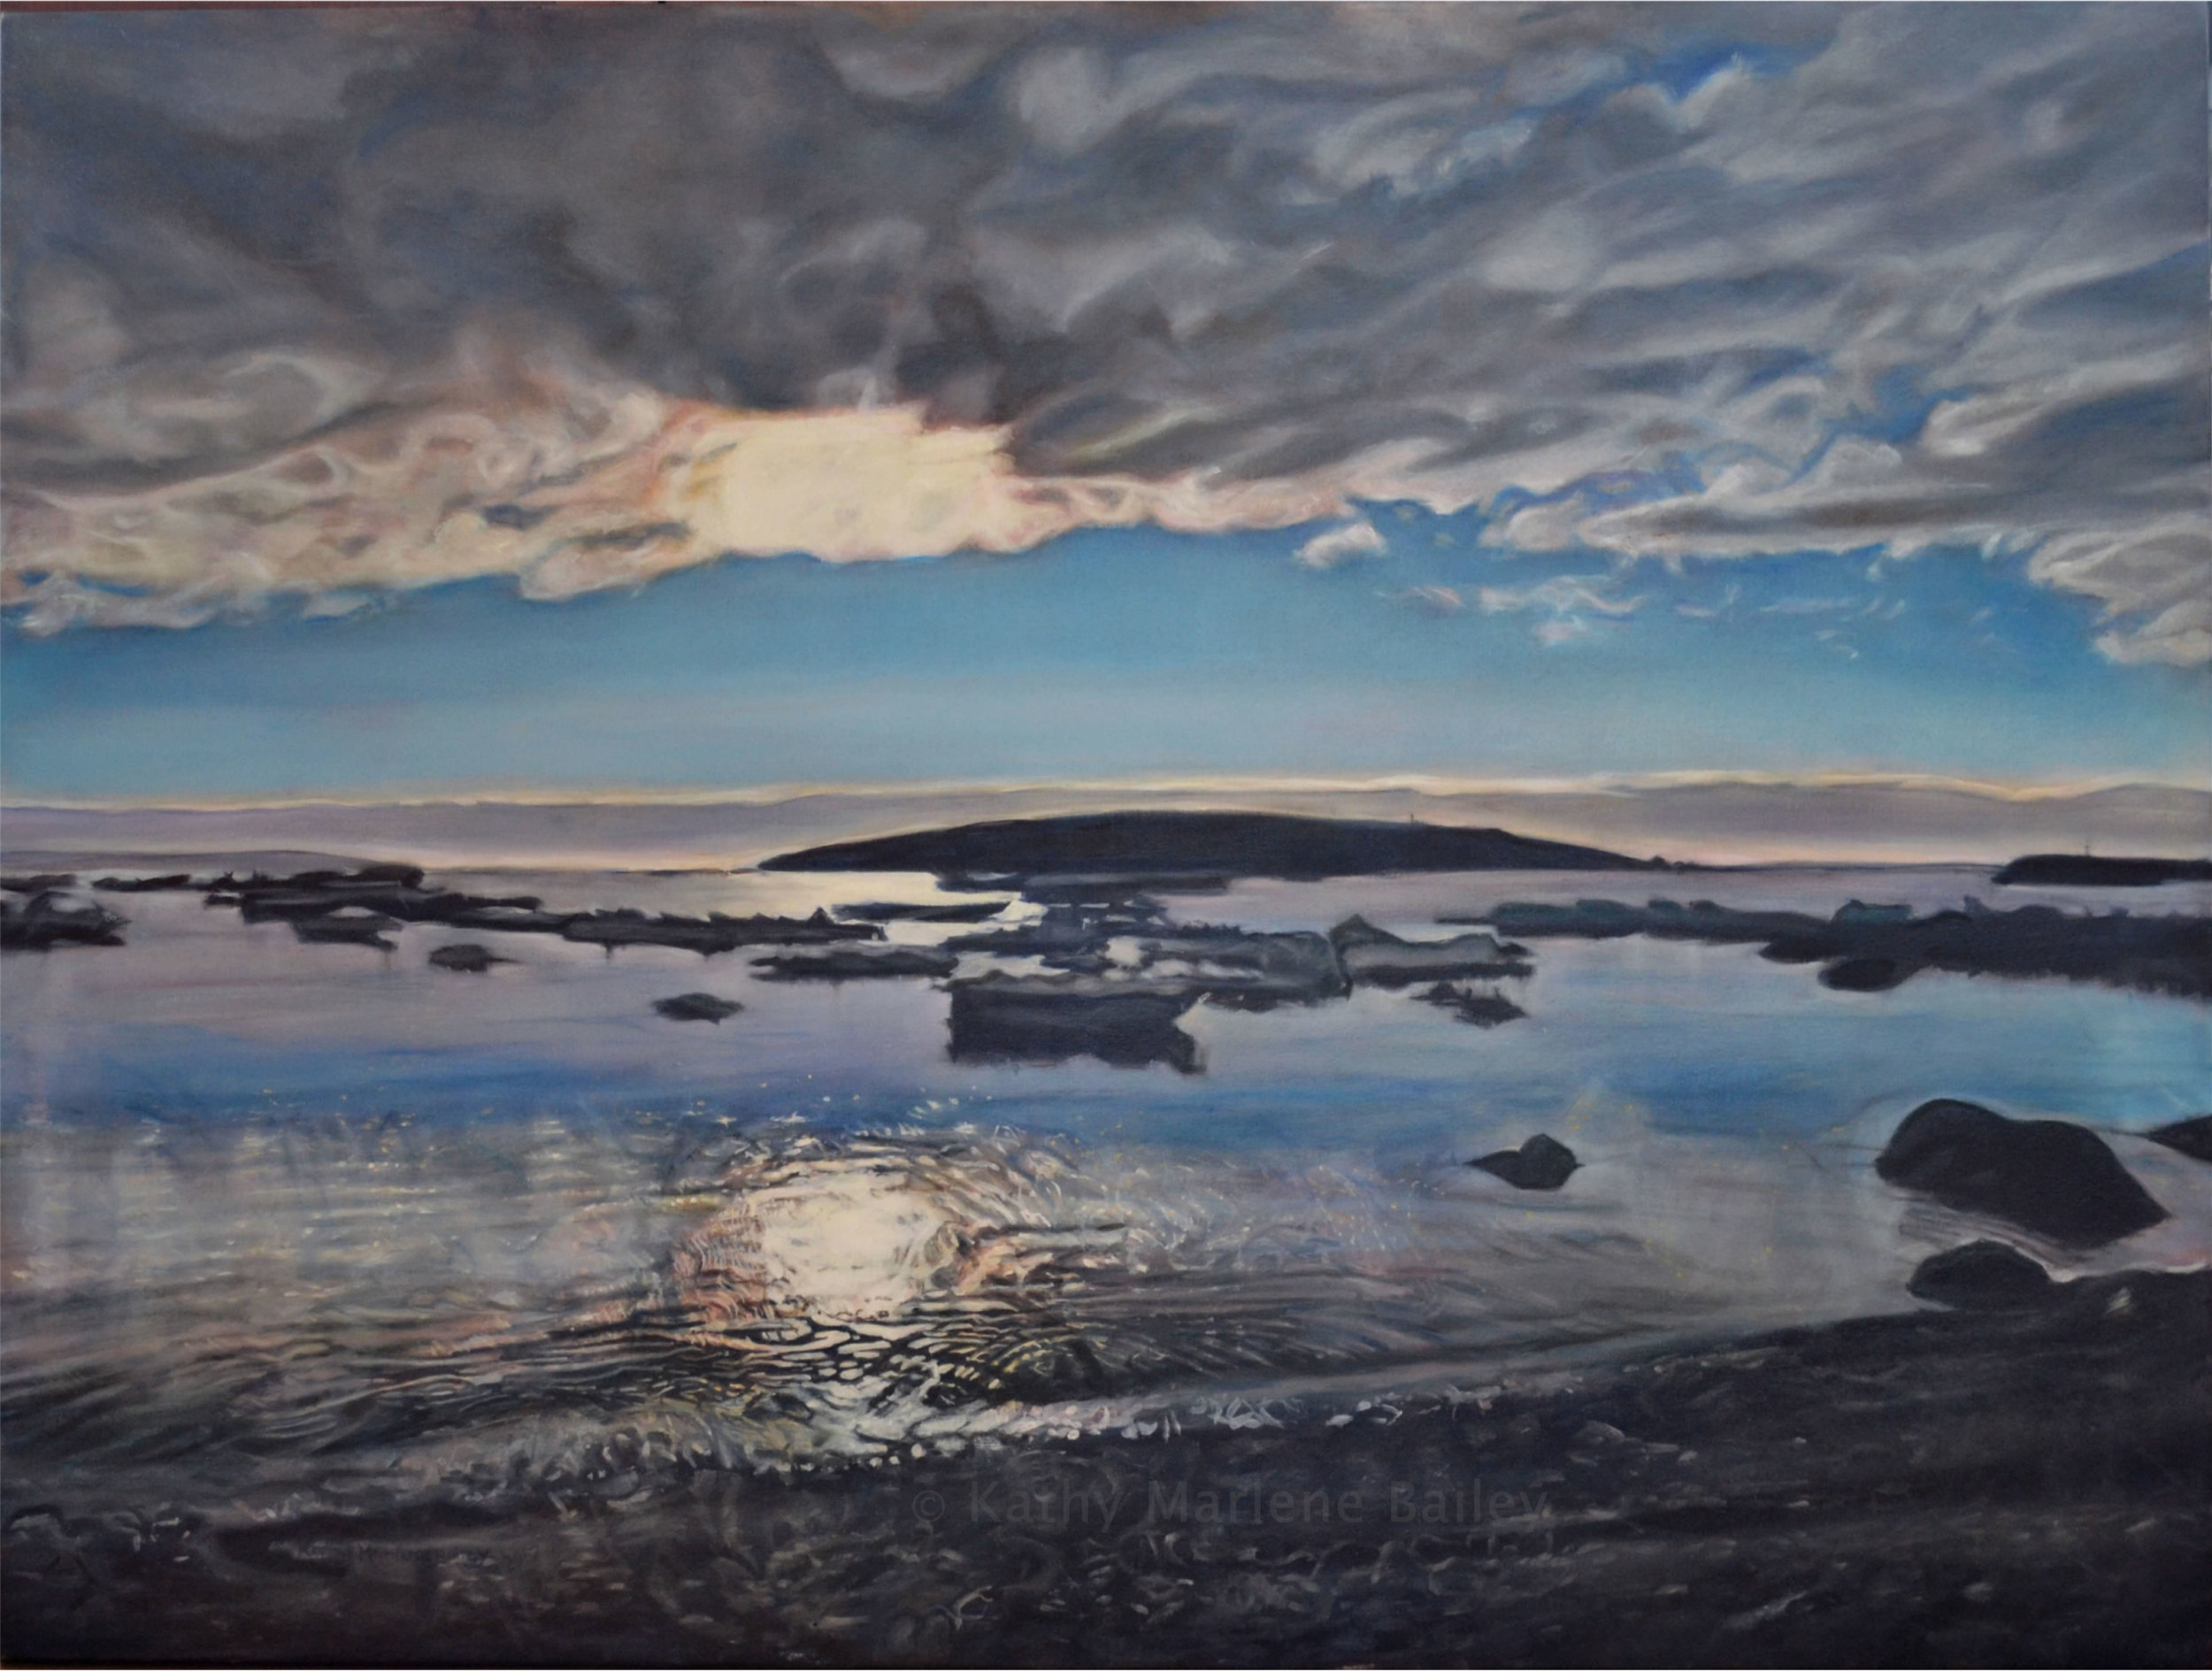 Thin Ice, Old Perlican, Island, Harbour, sunset, ice, pans, bergs, icebergs, global warming, fishery, Newfoundland and Labrador, NL, Nfld., Christina Parker, Gallery